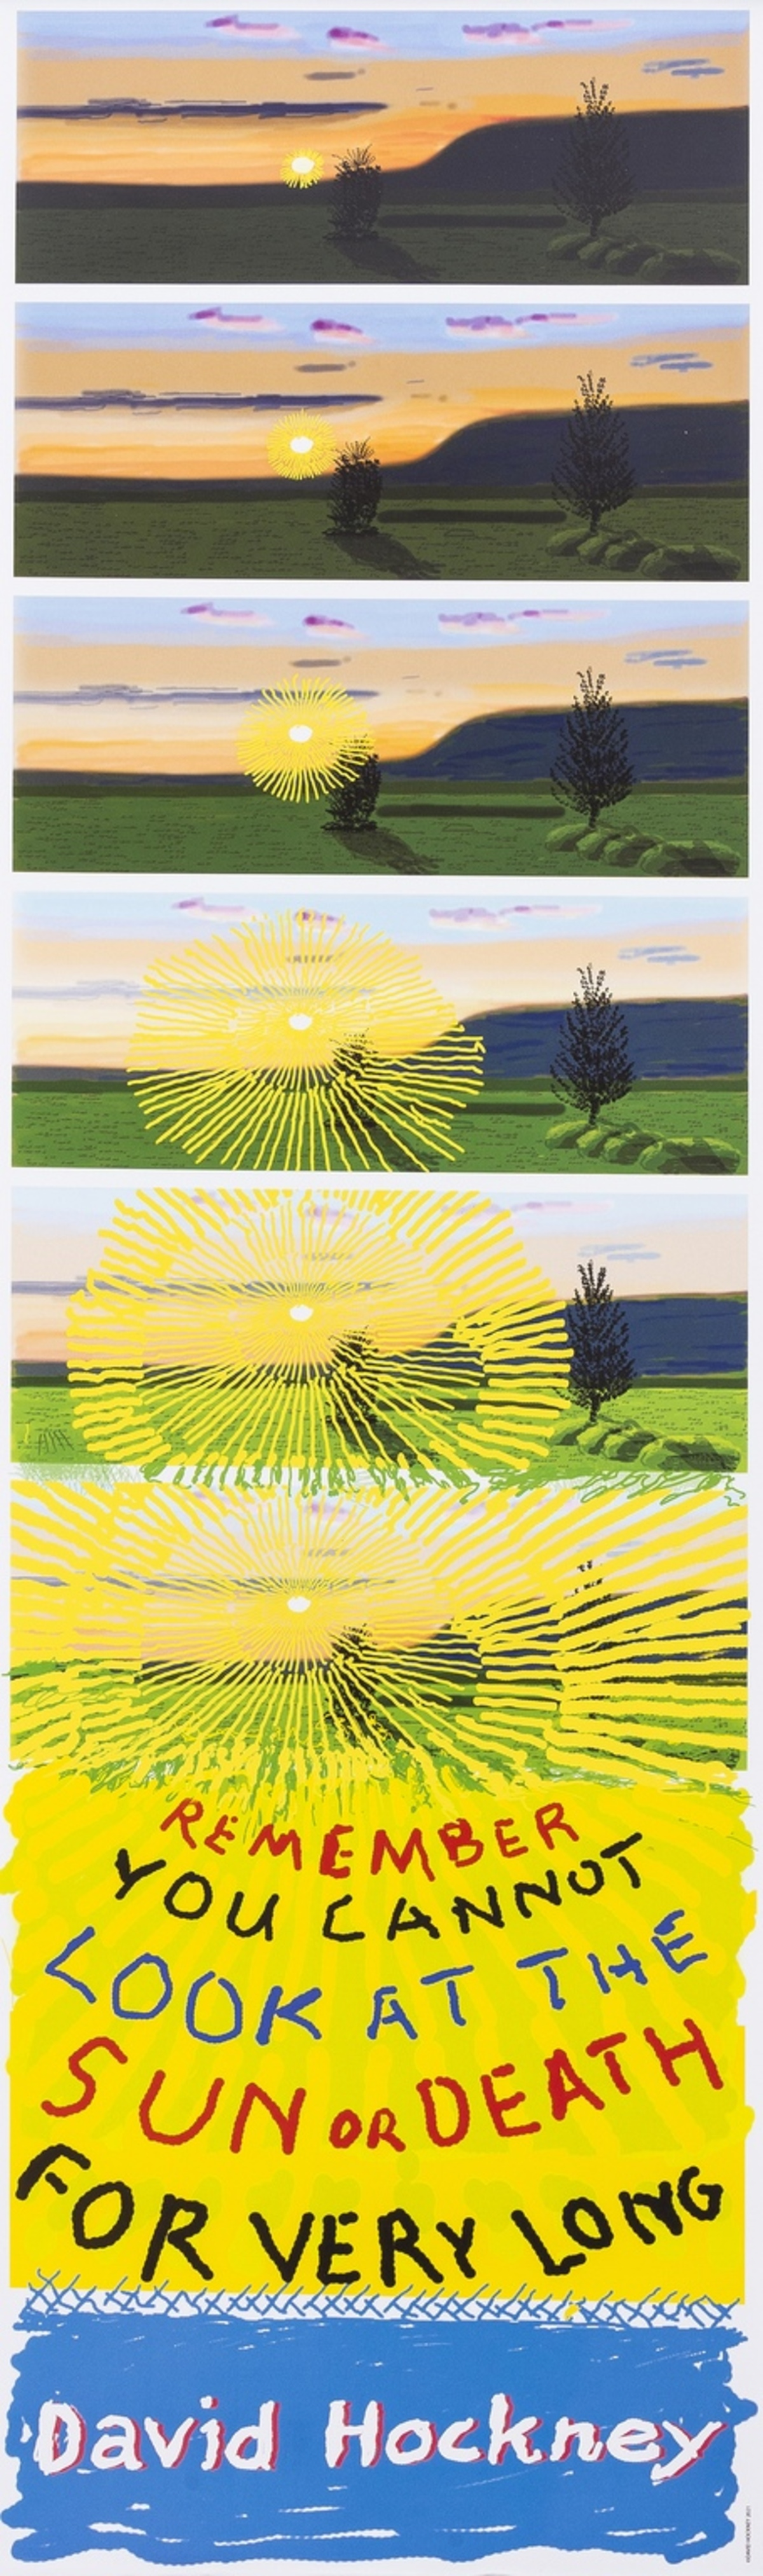 David Hockney (b.1937) Remember That You Cannot Look At The Sun Or Death Very Long